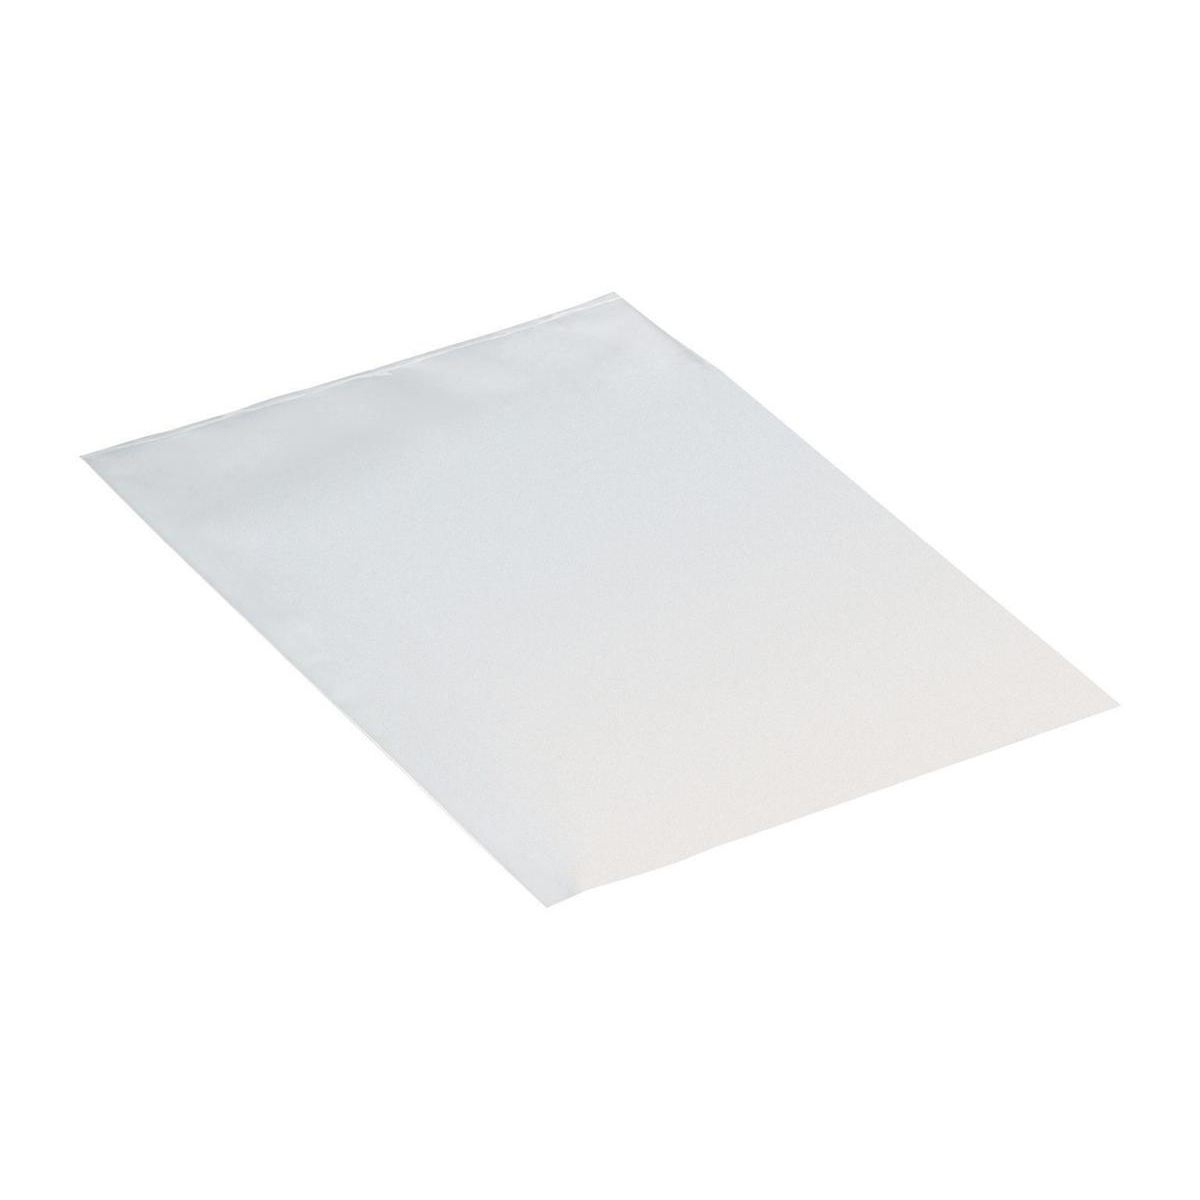 Polythene Bags 102x152mm 100 Micron Clear [Pack 1000]